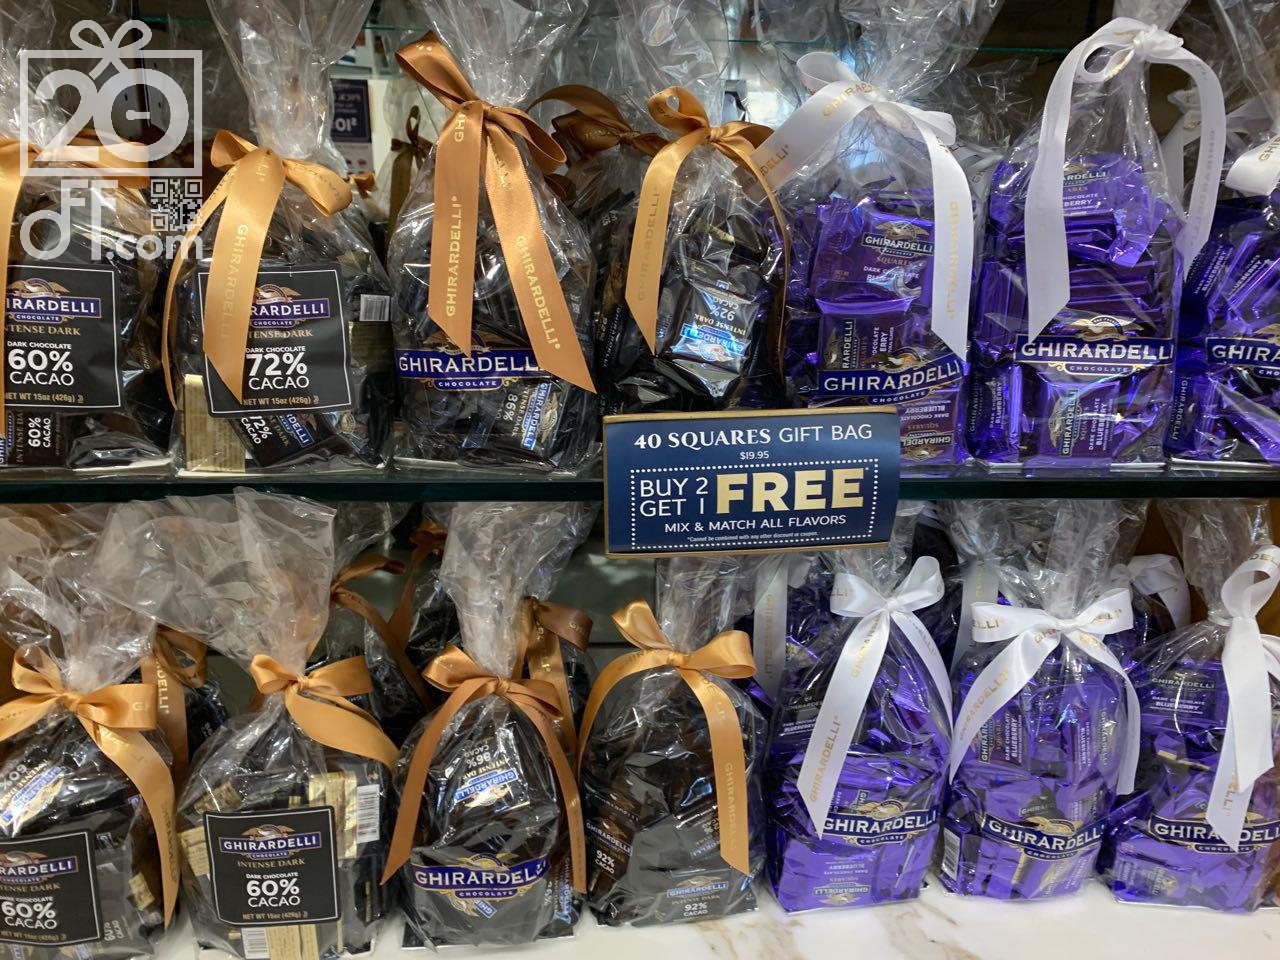 BOGO Mix Gift Bag Ghirardelli